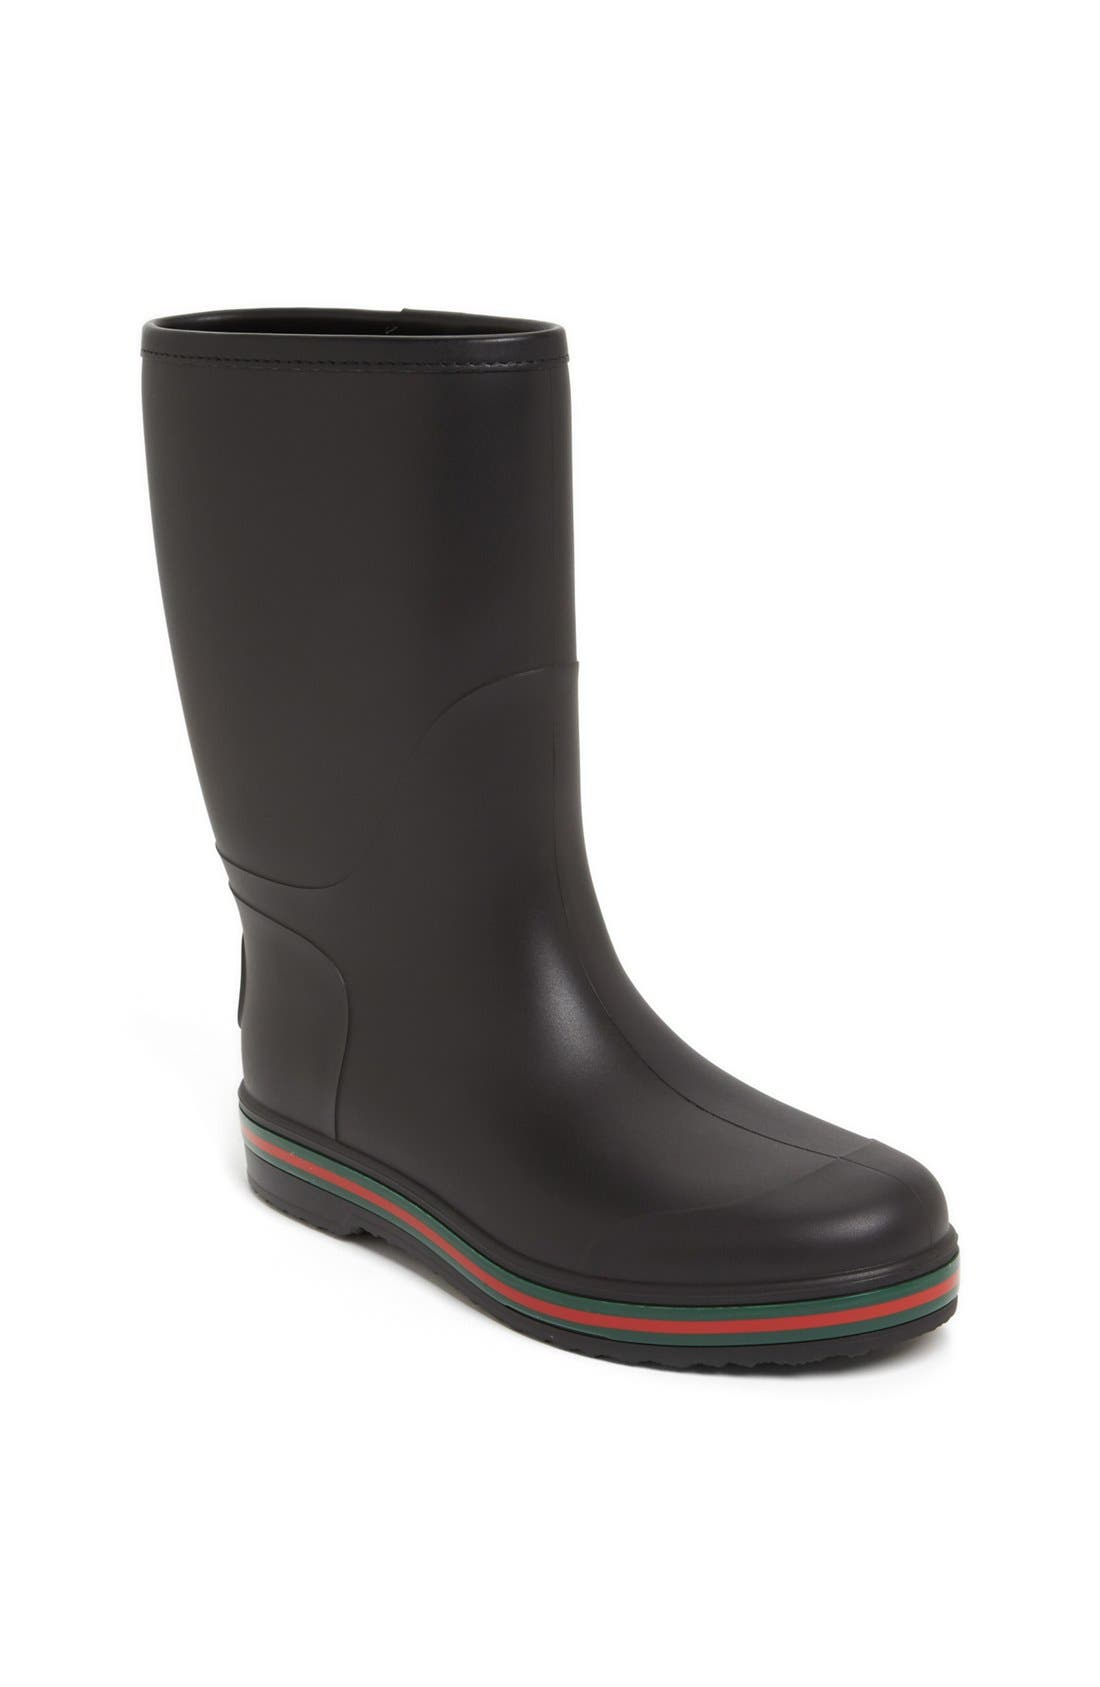 Alternate Image 1 Selected - Gucci 'Brest' Rain Boot